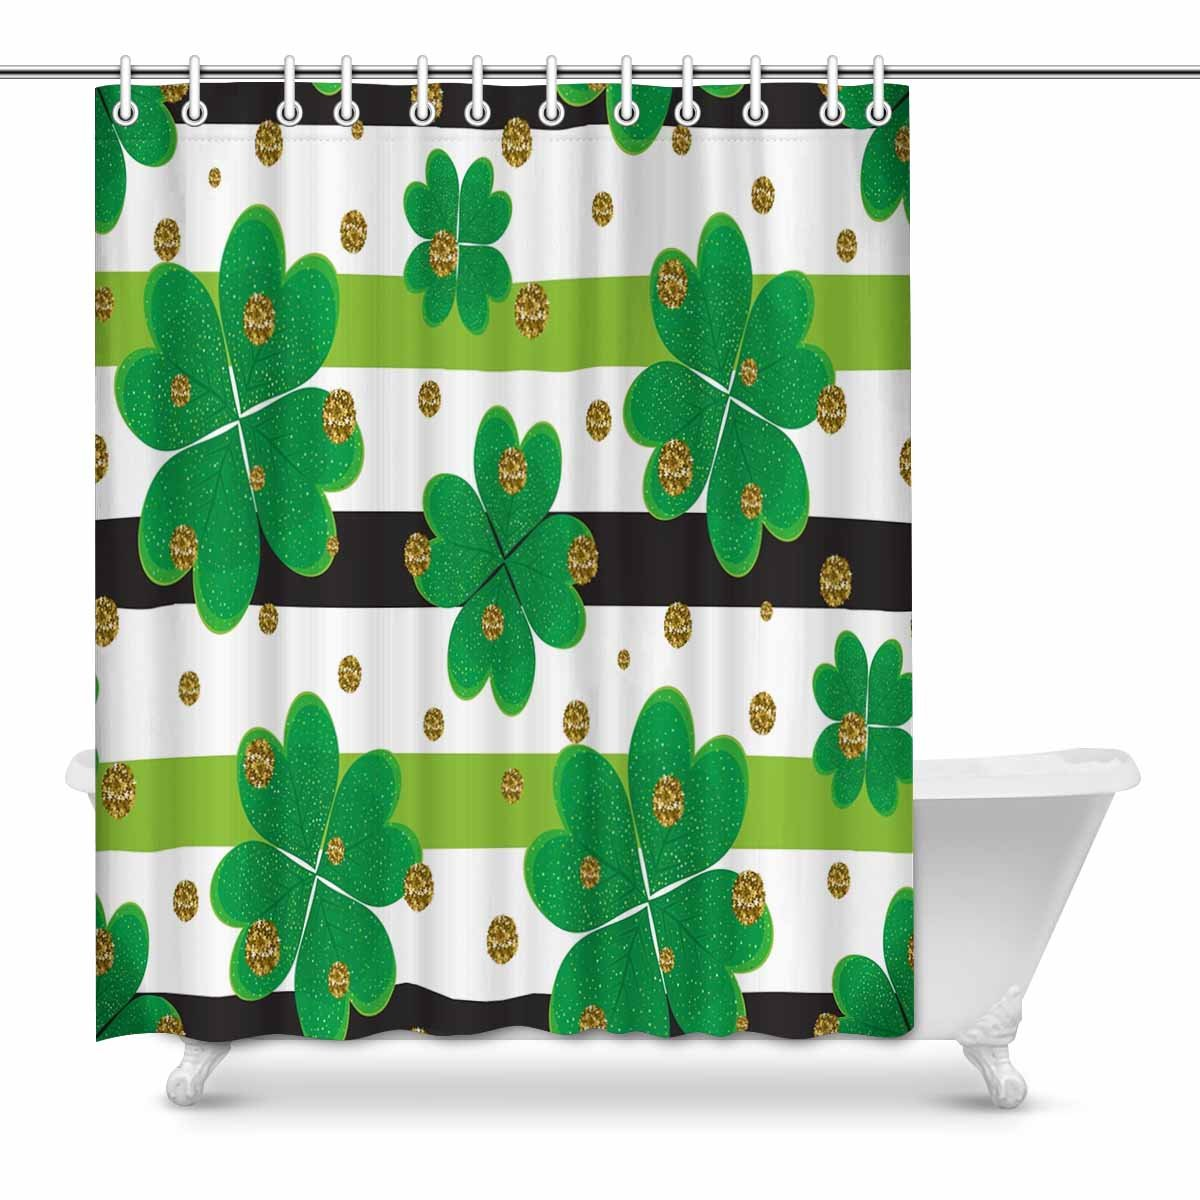 Pop Clover Leaves Gold Circles Striped Shower Curtain 60x72 Inch